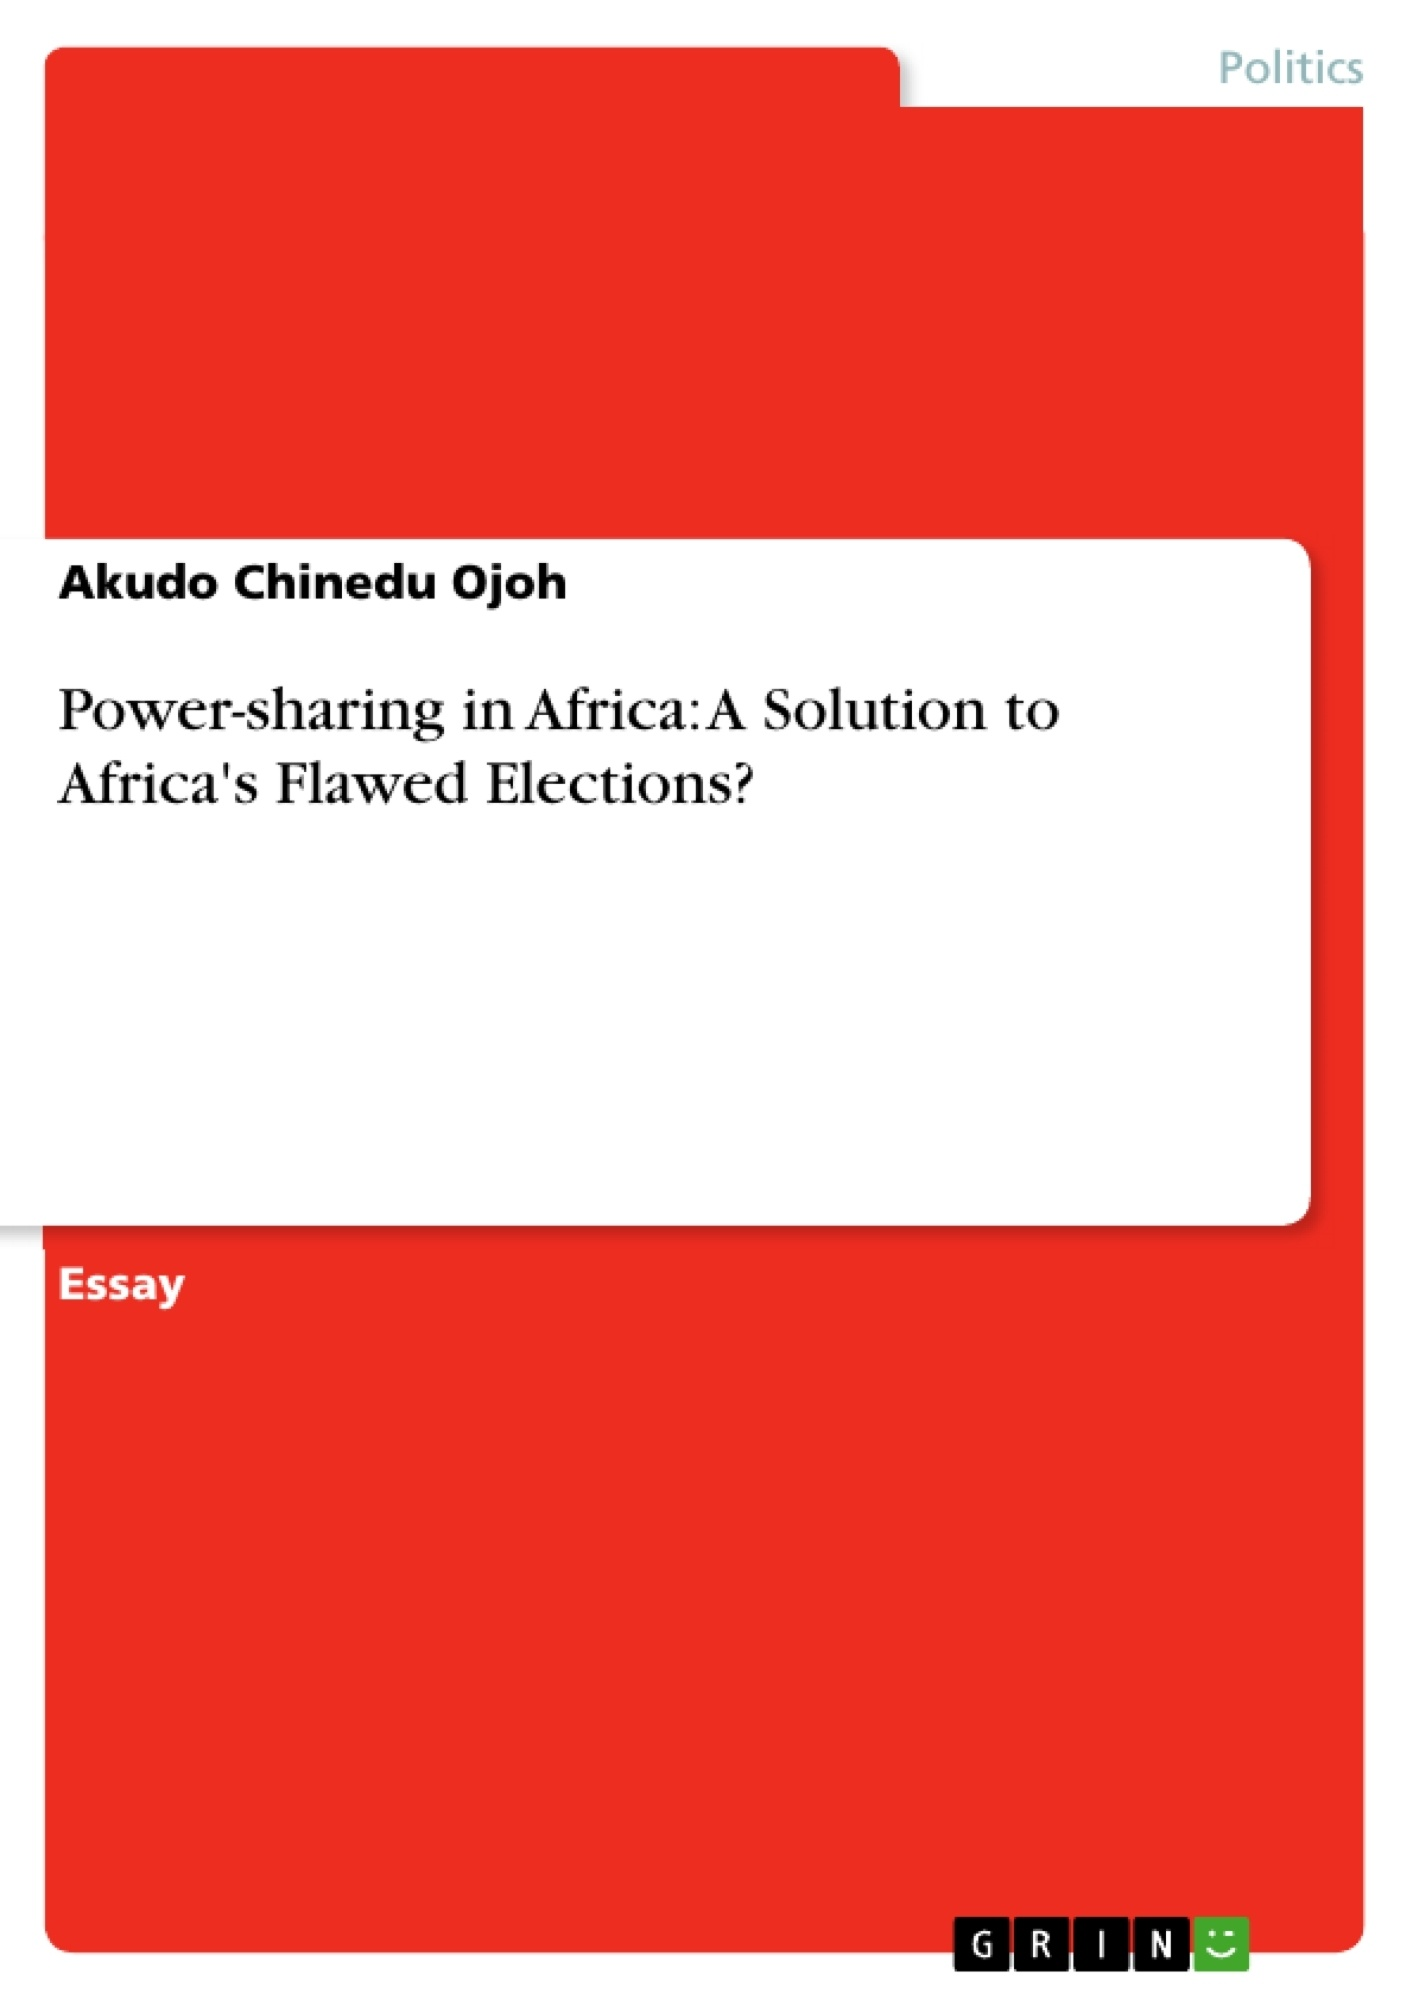 Title: Power-sharing in Africa: A Solution to Africa's Flawed Elections?